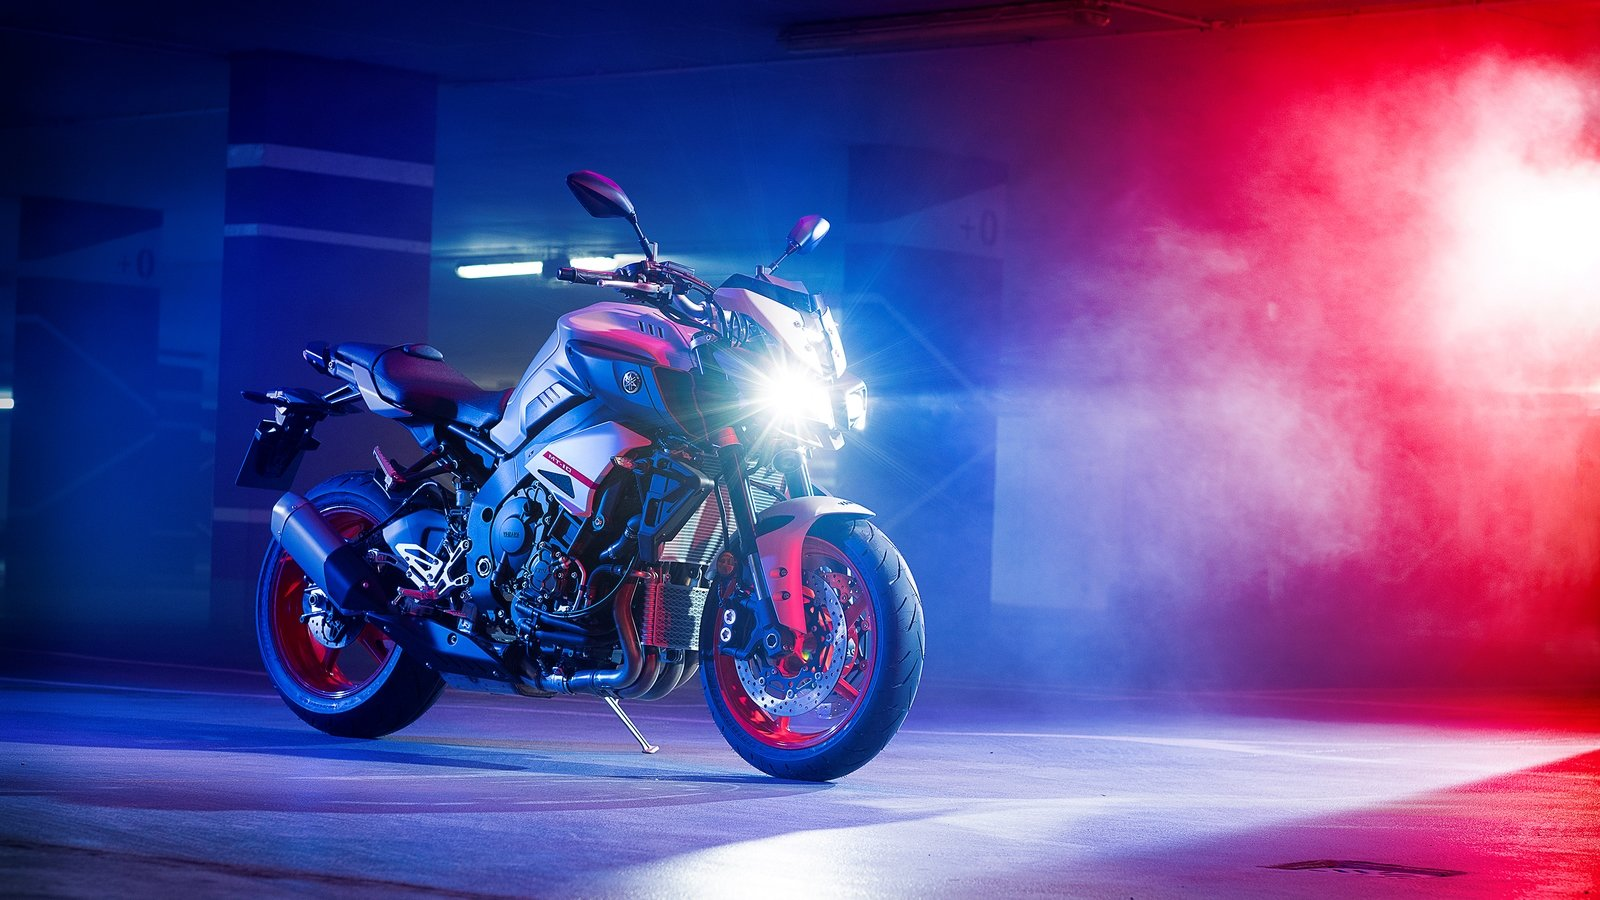 2018 - 2019 Yamaha MT-10 | Top Speed